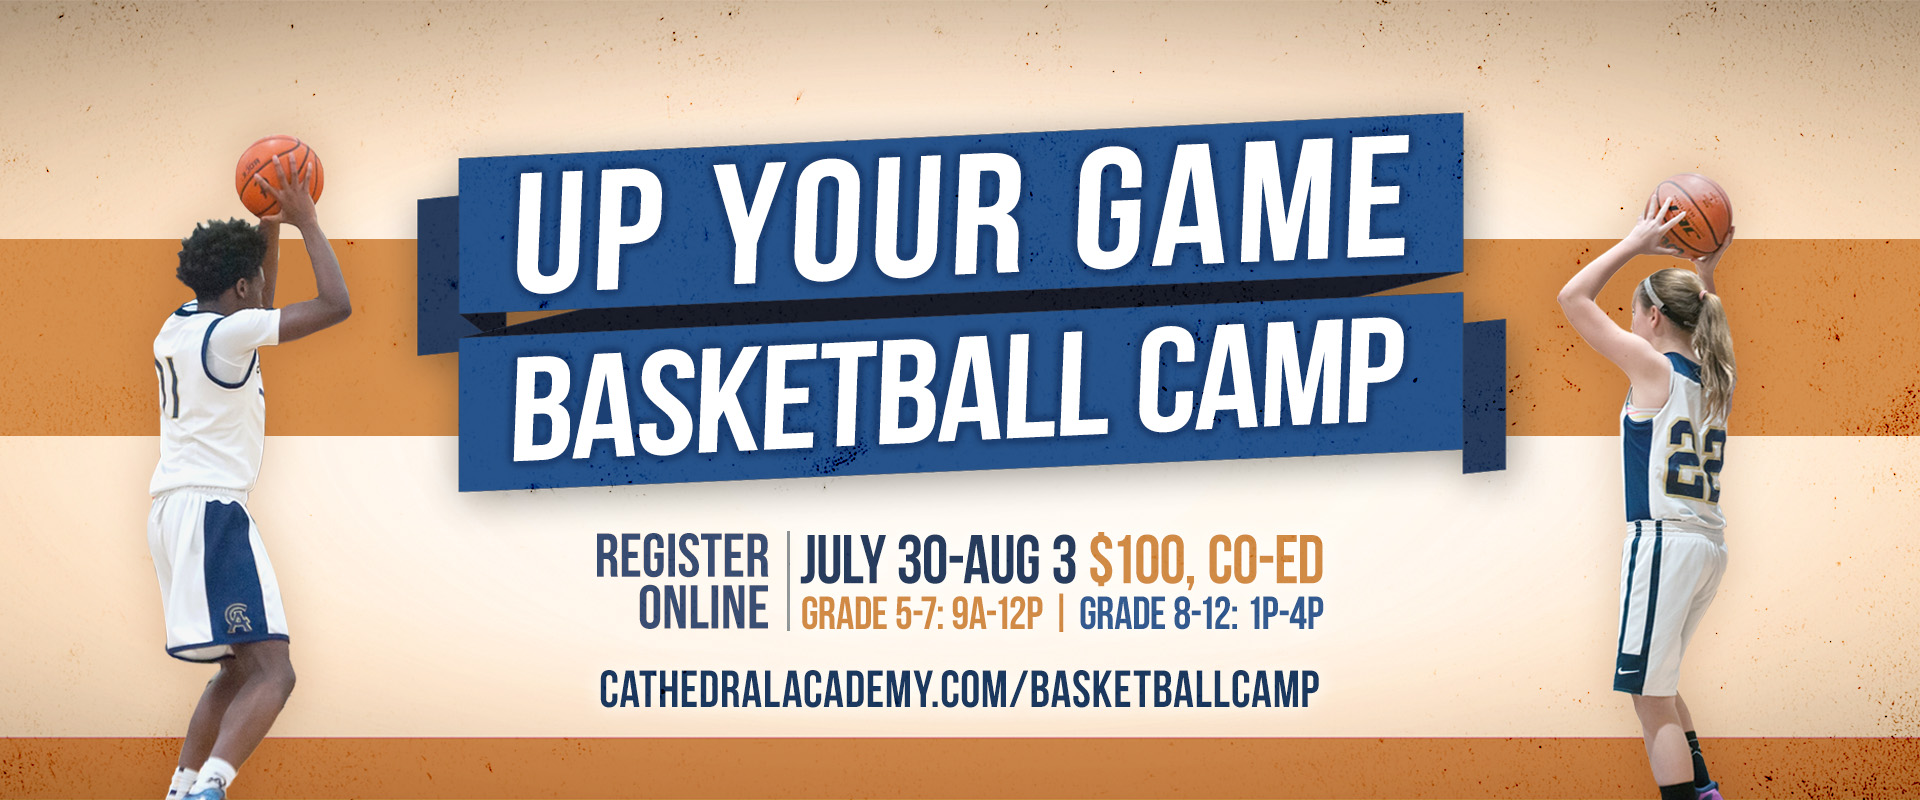 Up Your Game - youth basketball camp